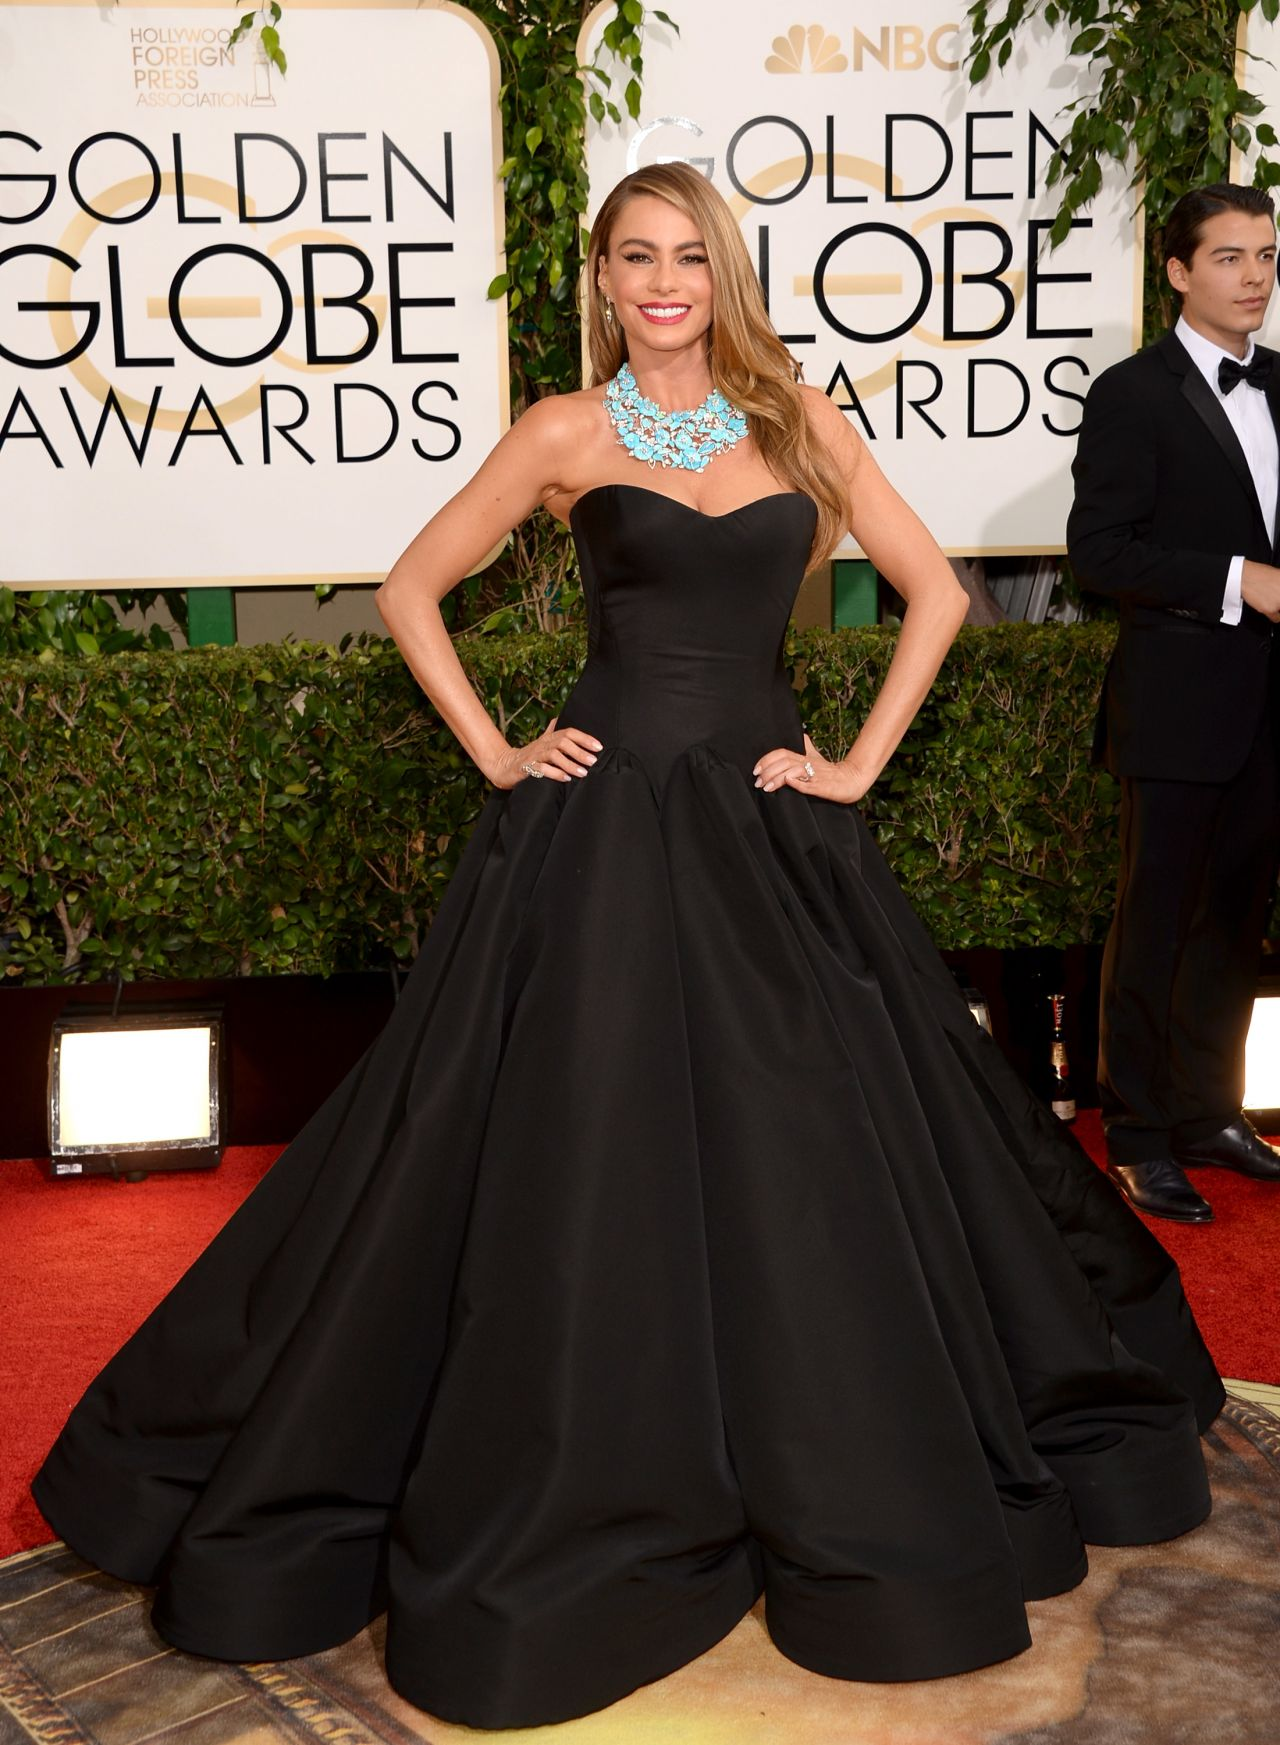 Sofia Vergara on Red Carpet - 2014 Golden Globe Awards